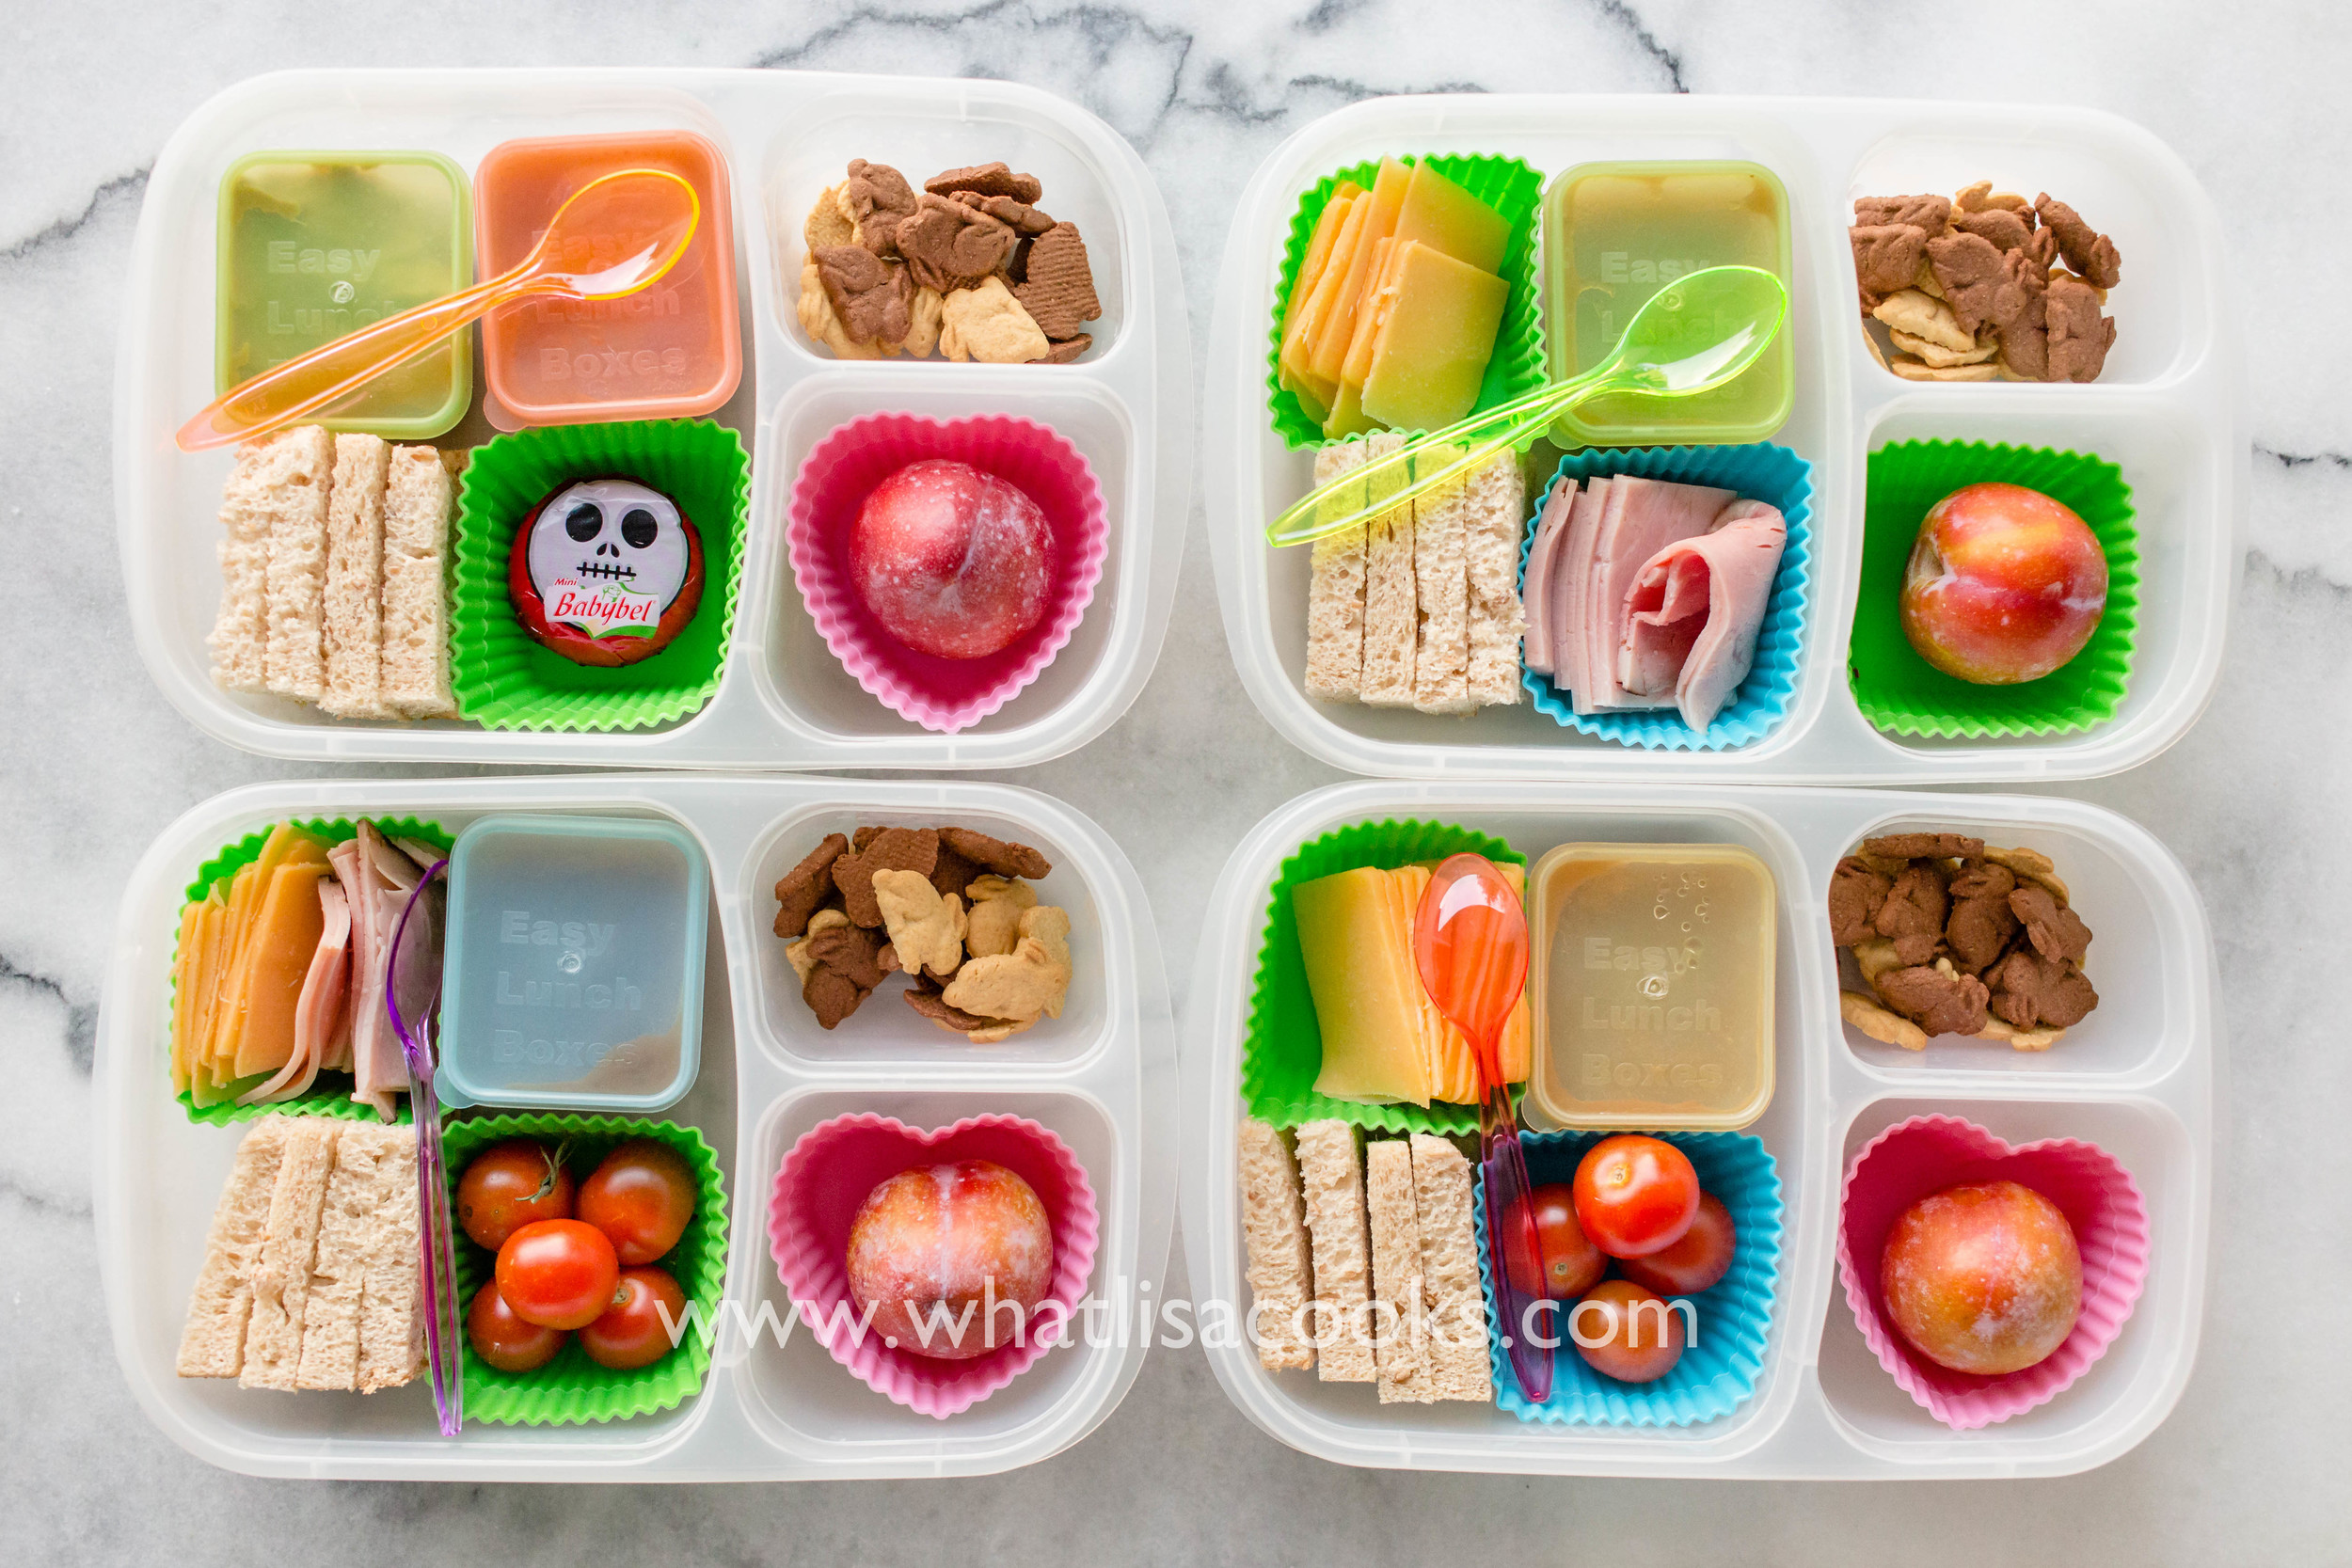 Make your won sandwich kit, with bread, cheese, ham, and one has peanut butter. Applesauce, tomatoes, cookies, and a plum on the side.